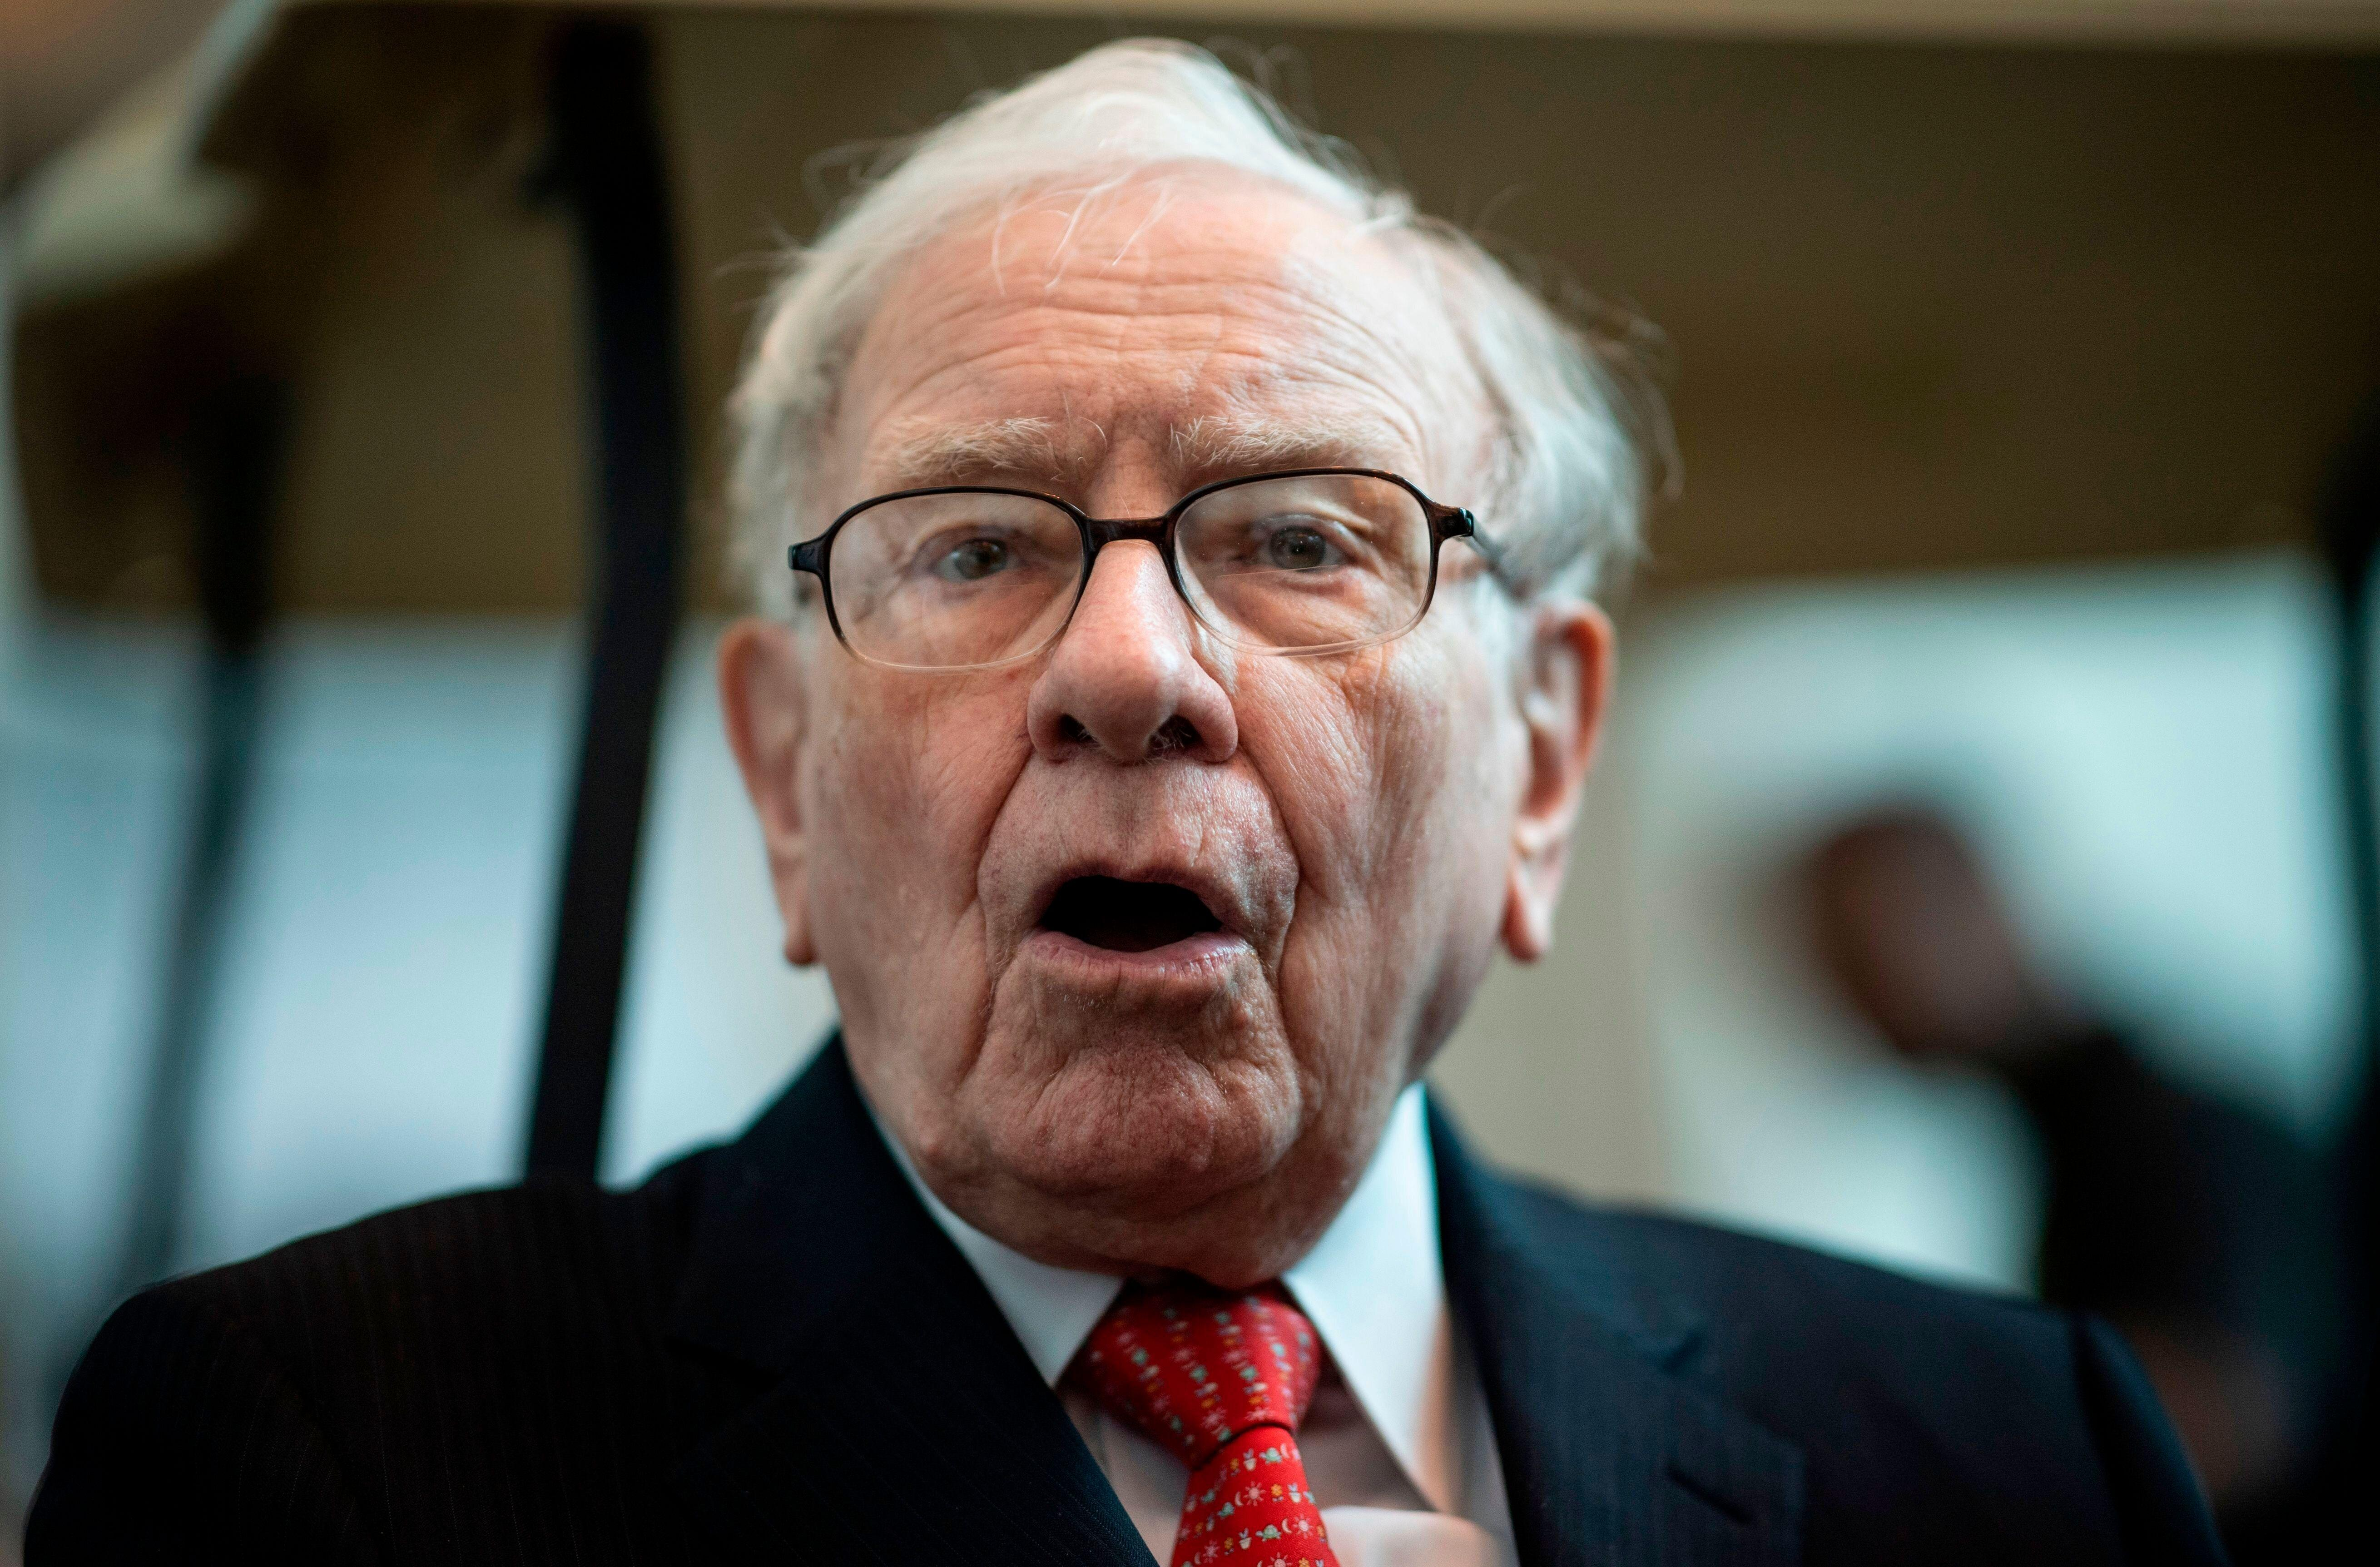 Warren Buffett on what he values most life: 'It's the two things you can't buy'